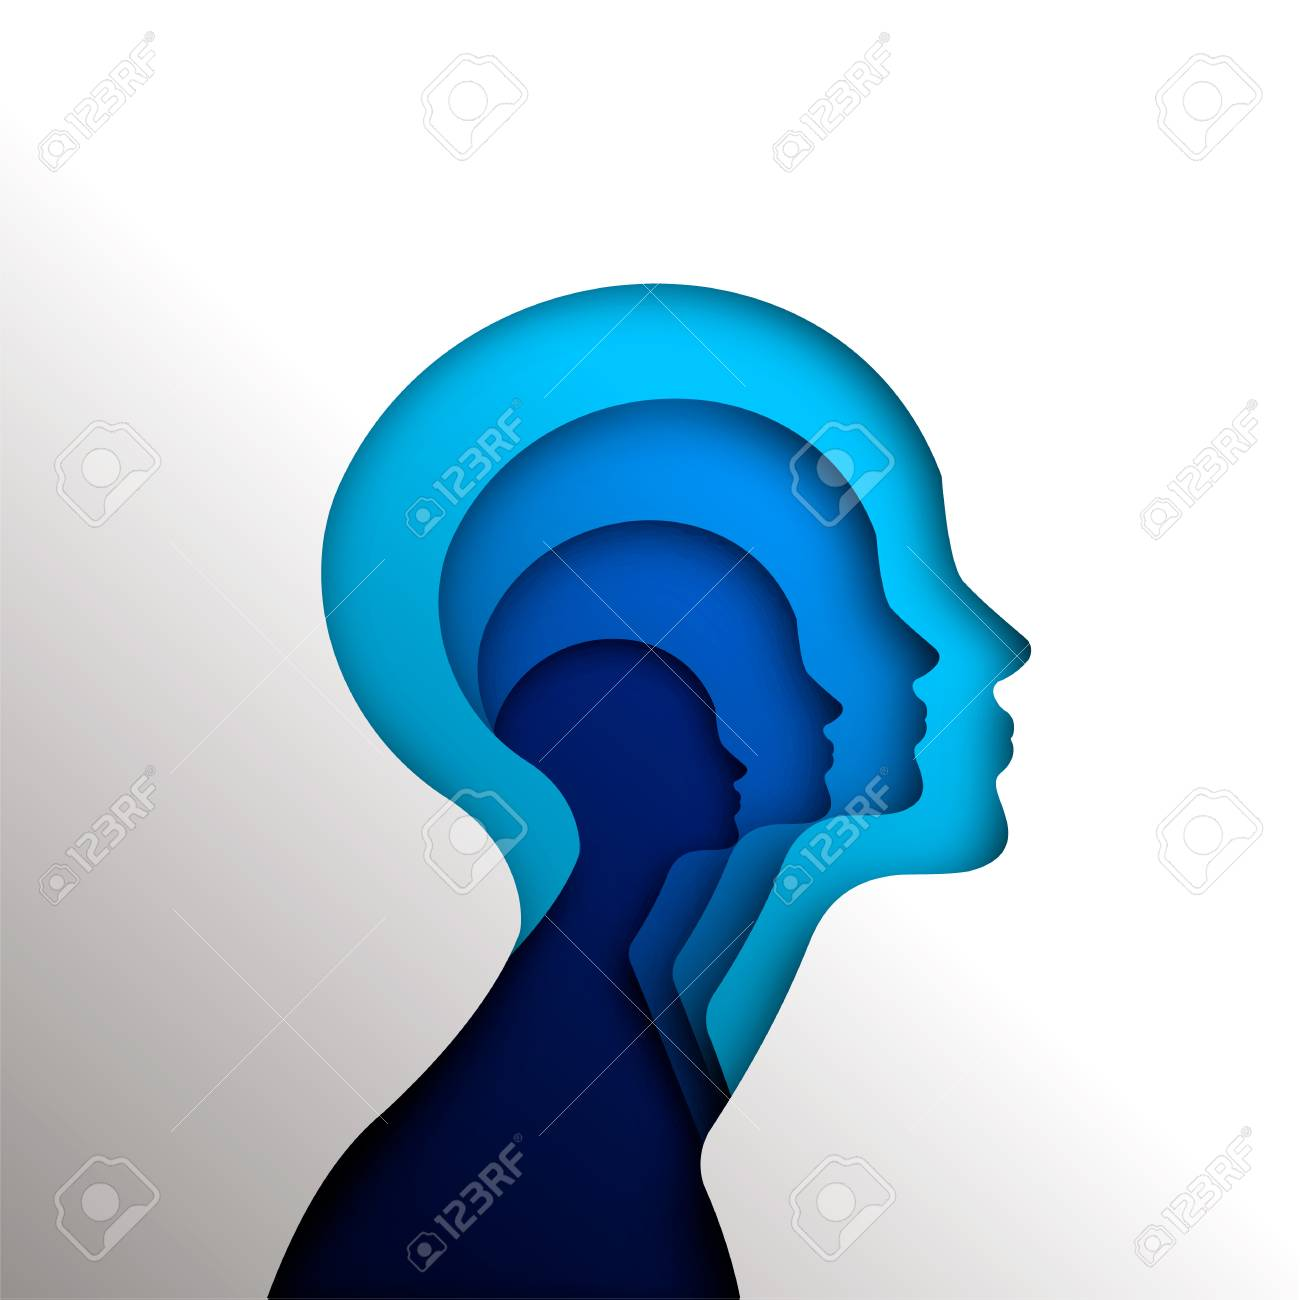 Human heads in paper cut style for psychology, self help concept or mental health, blue woman head cutout illustration. EPS10 vector. - 111794520